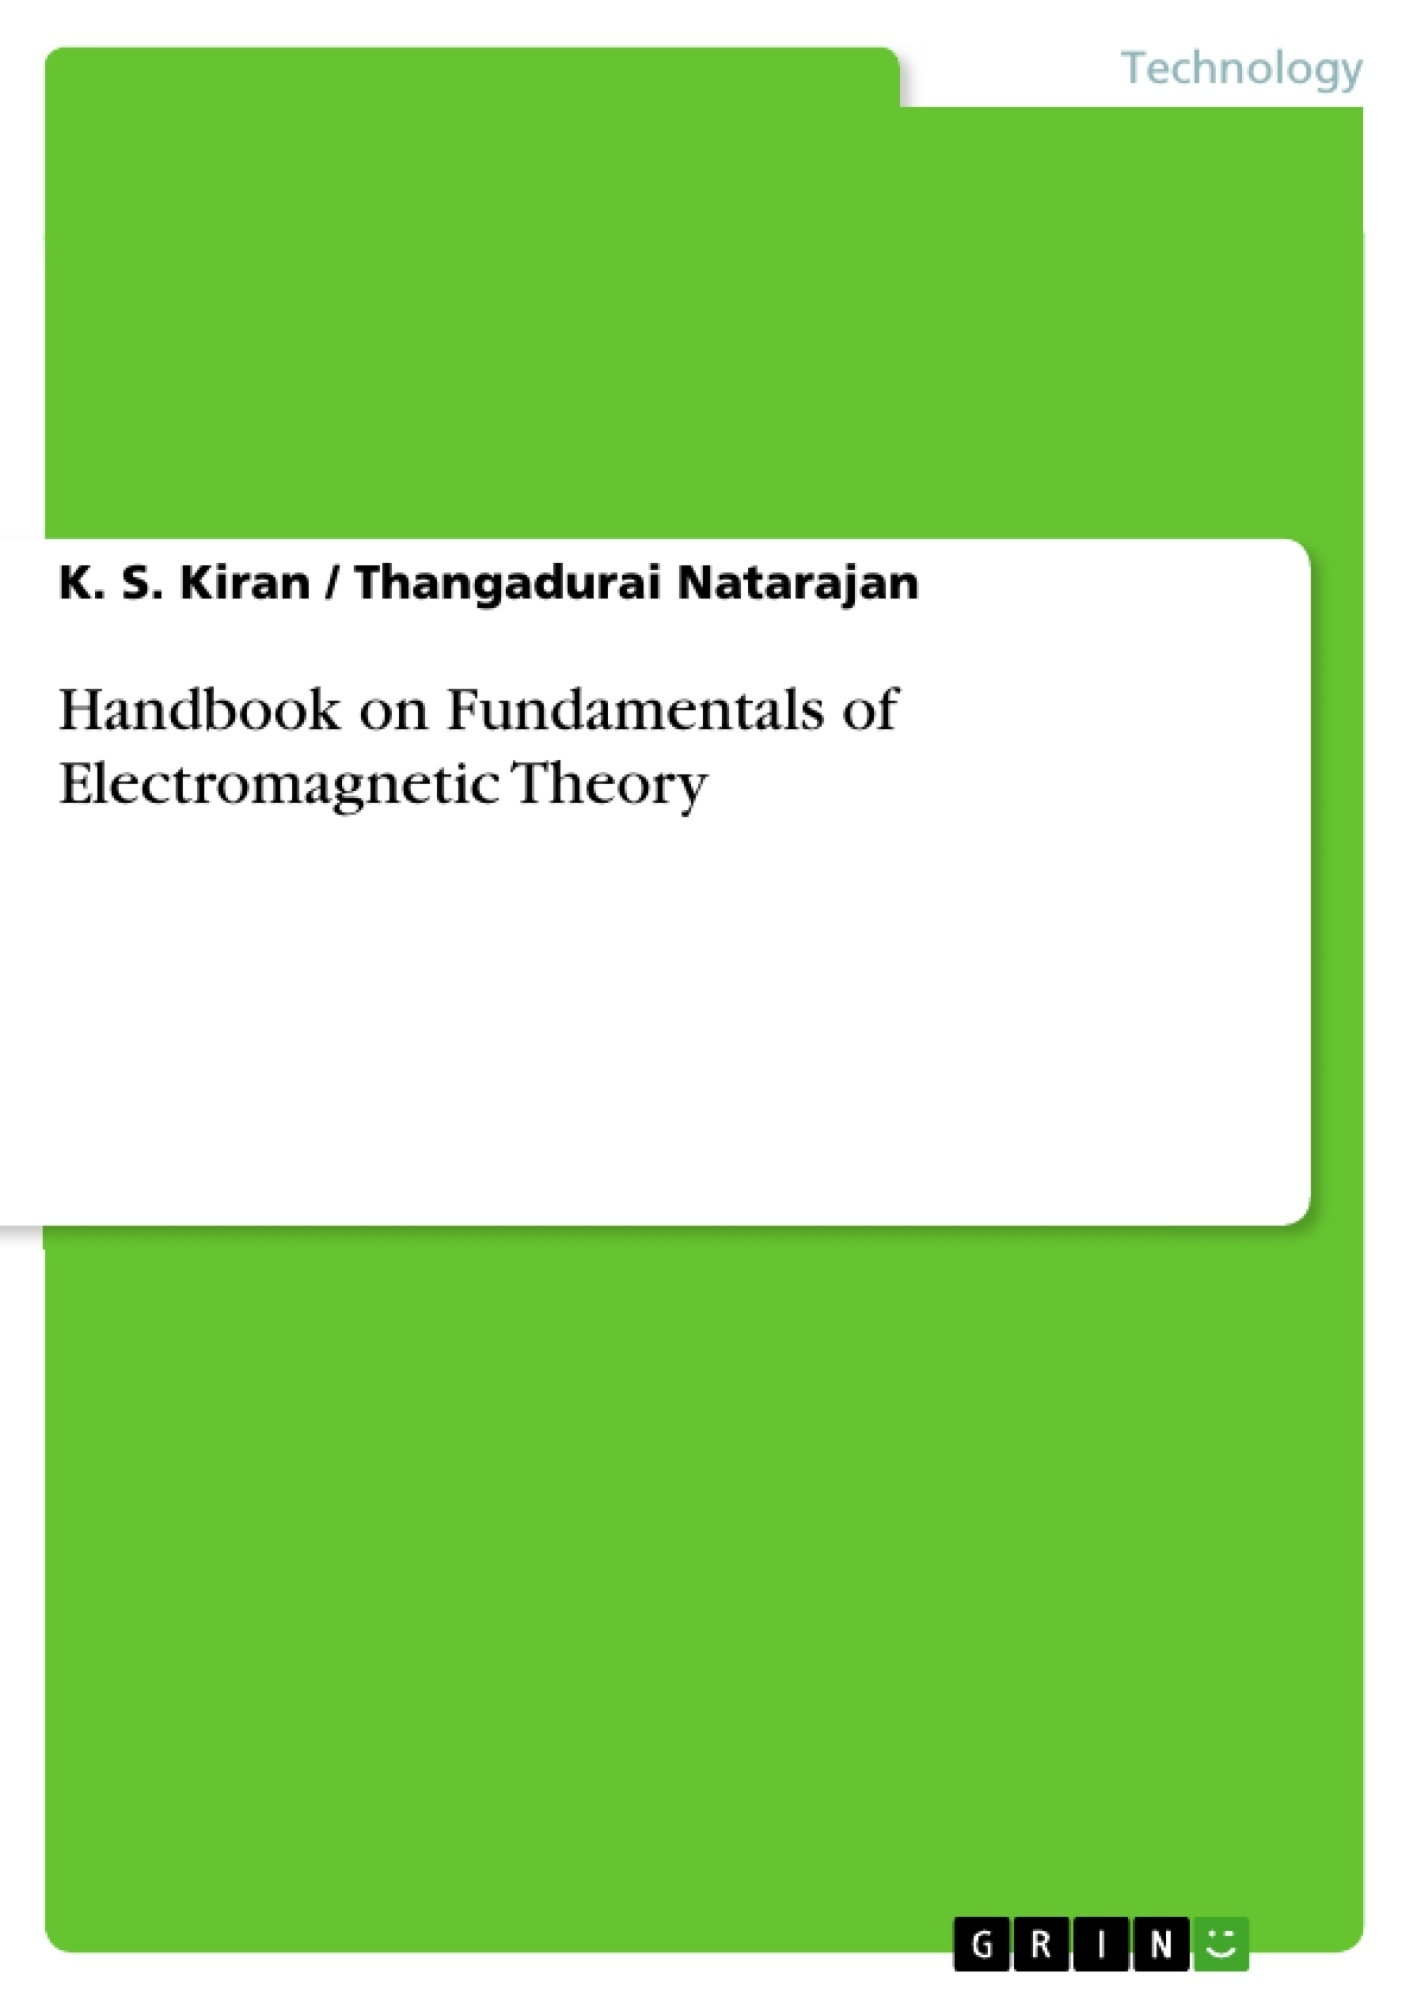 Title: Handbook on Fundamentals of Electromagnetic Theory